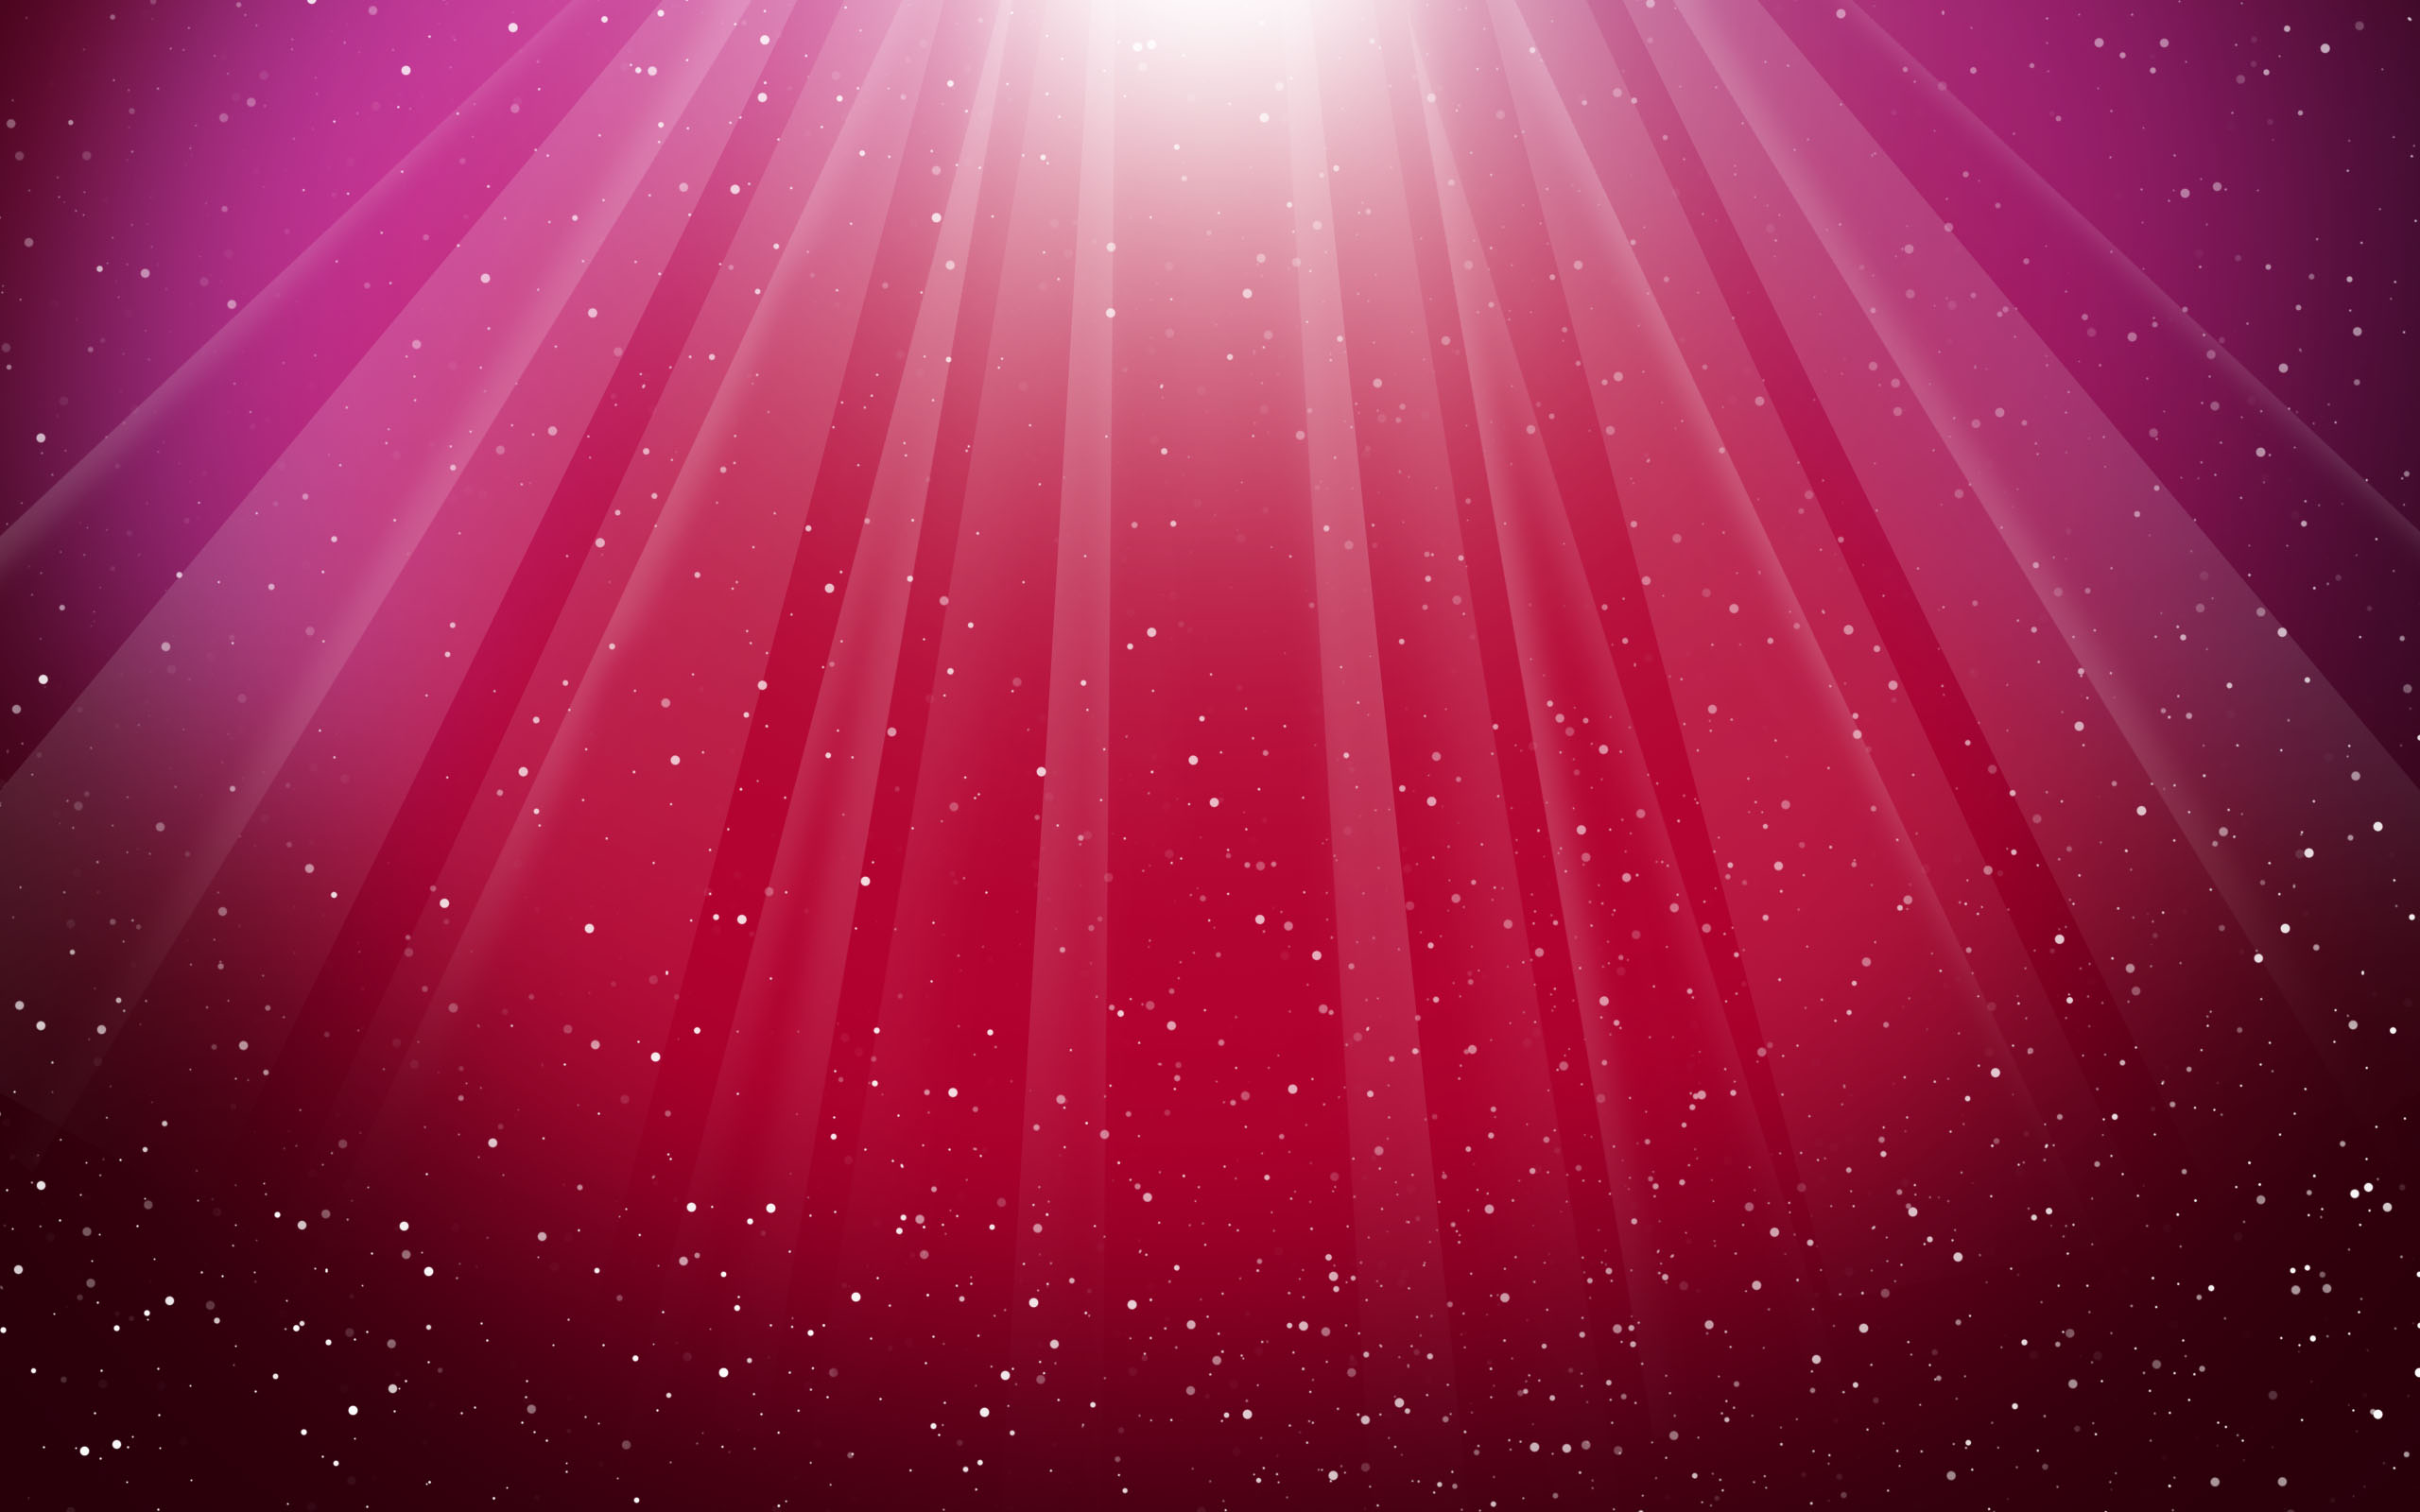 33672 Extra Large Colorful Backgrounds Vol 4 No 16 2560x1600